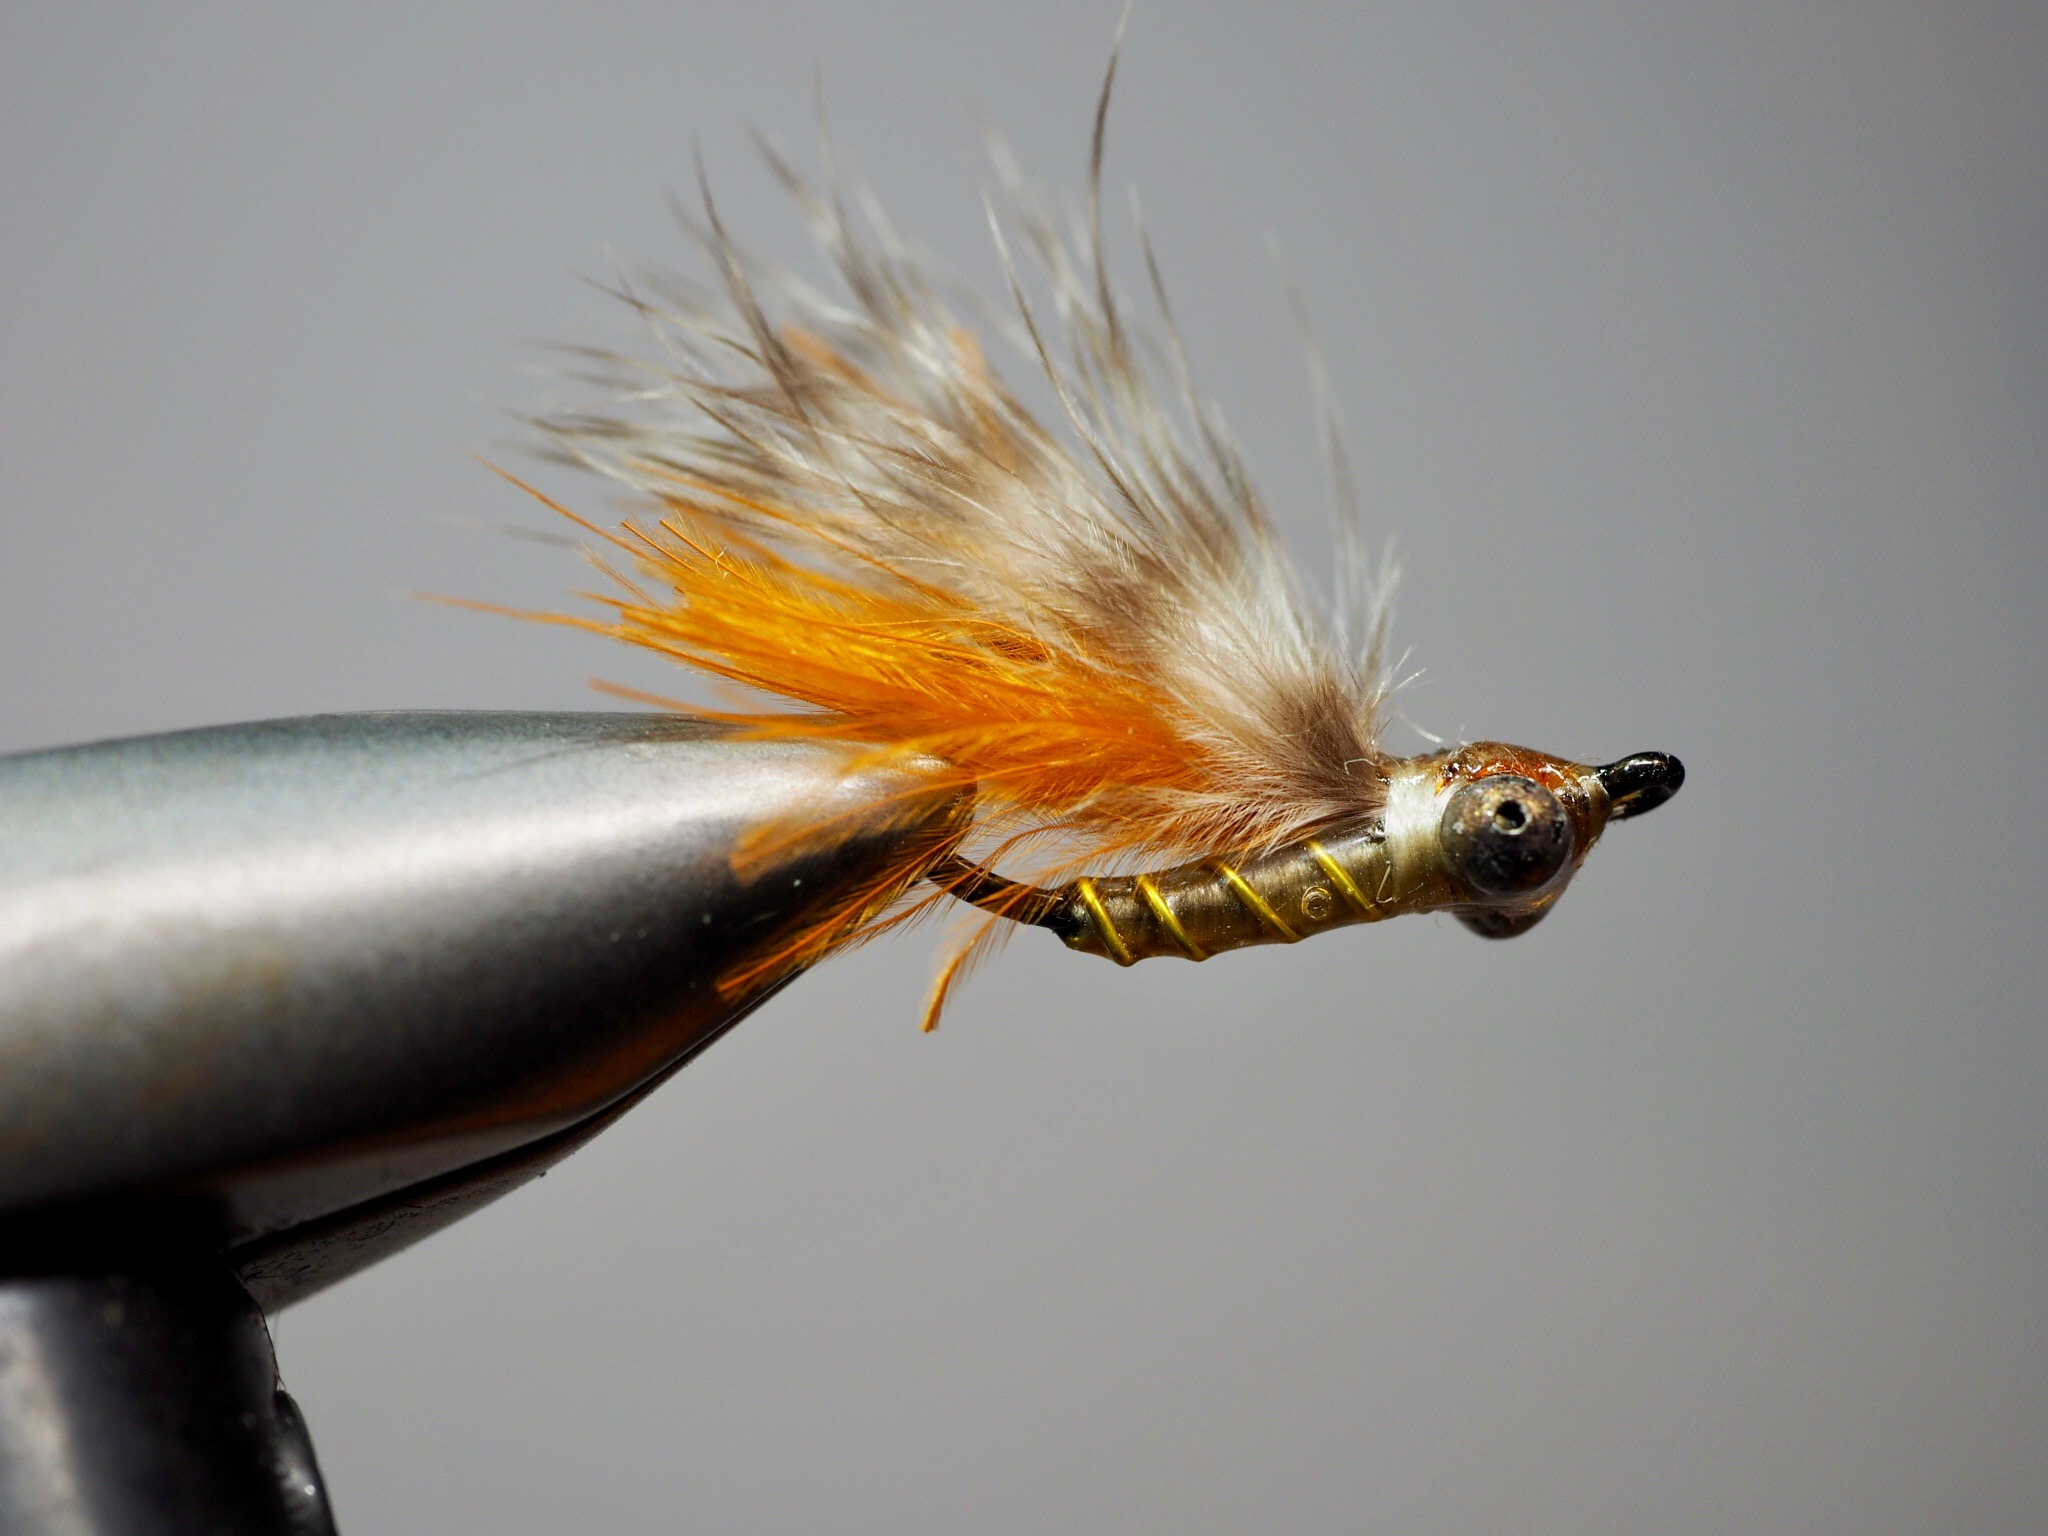 My favorite SMP is tied with a barred marabou wing.  UV resin makes this pattern bombproof, it will hold up to dozens of fish.  Tied on a Gamakatsu hook designed for bonefish (SL45), it will hold any bass that decides this panfish pattern was meant for him.